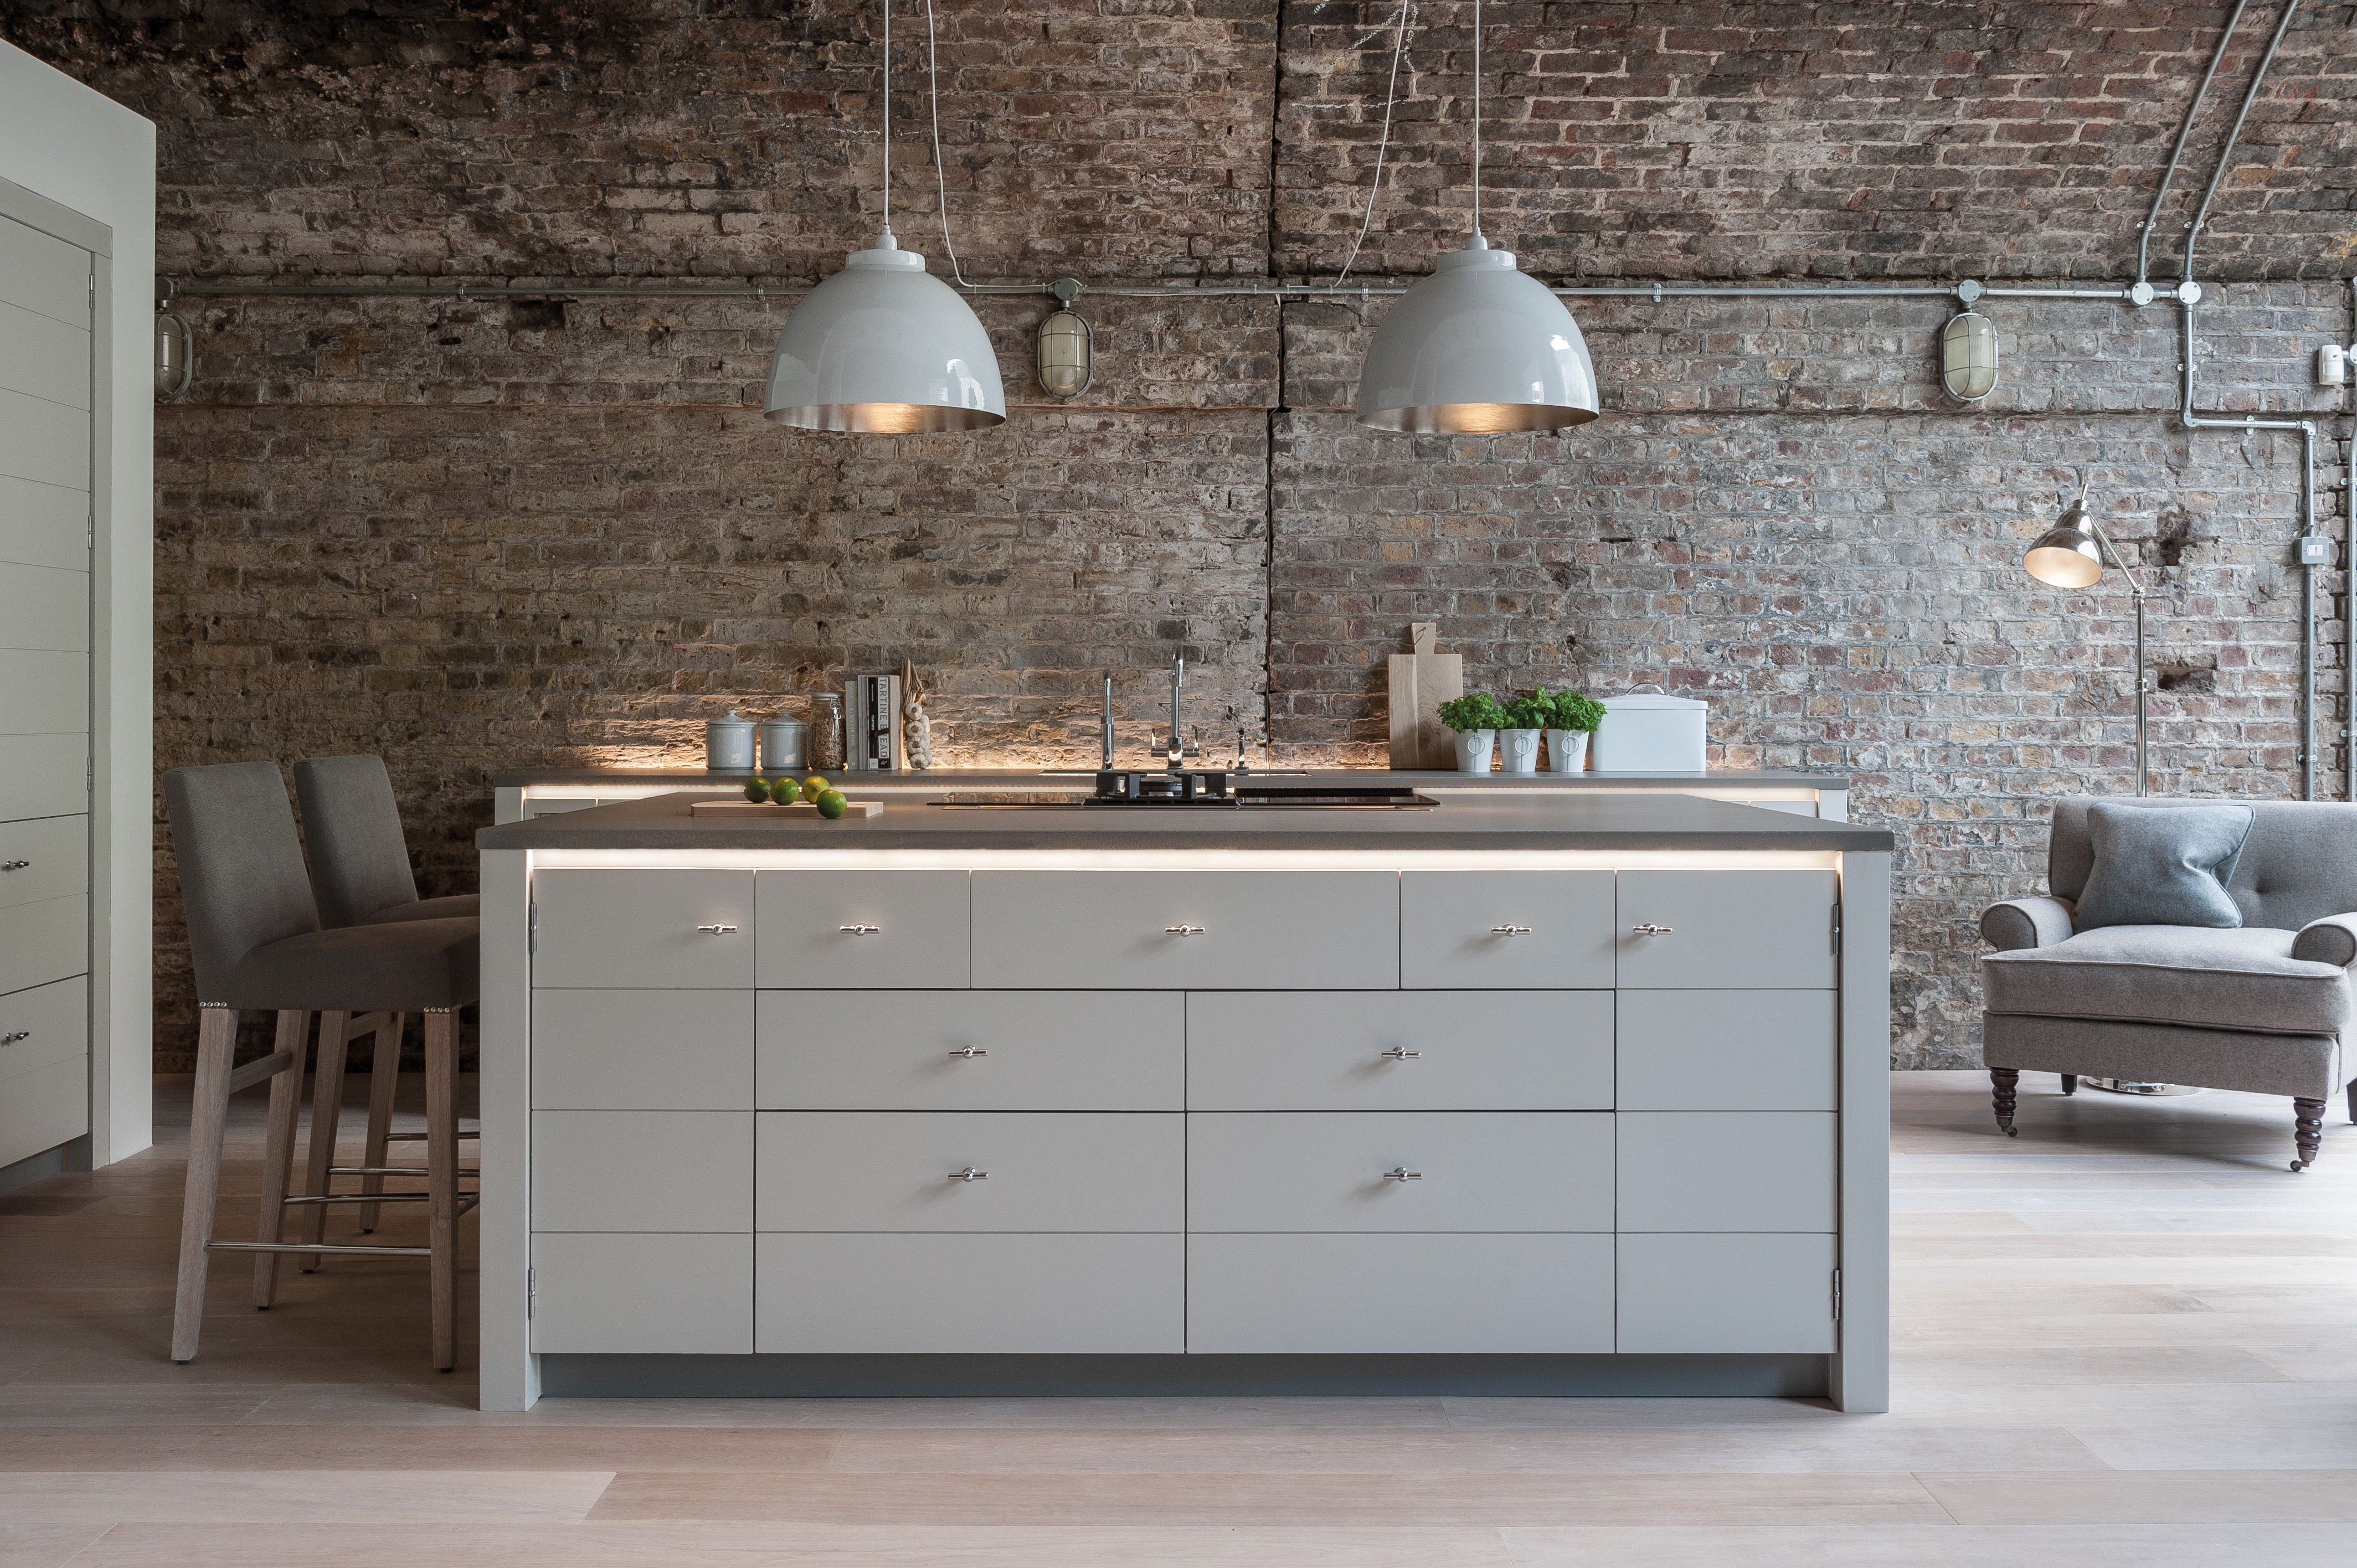 Neptune Limehouse Handmade Fitted Kitchen Available At Browsers